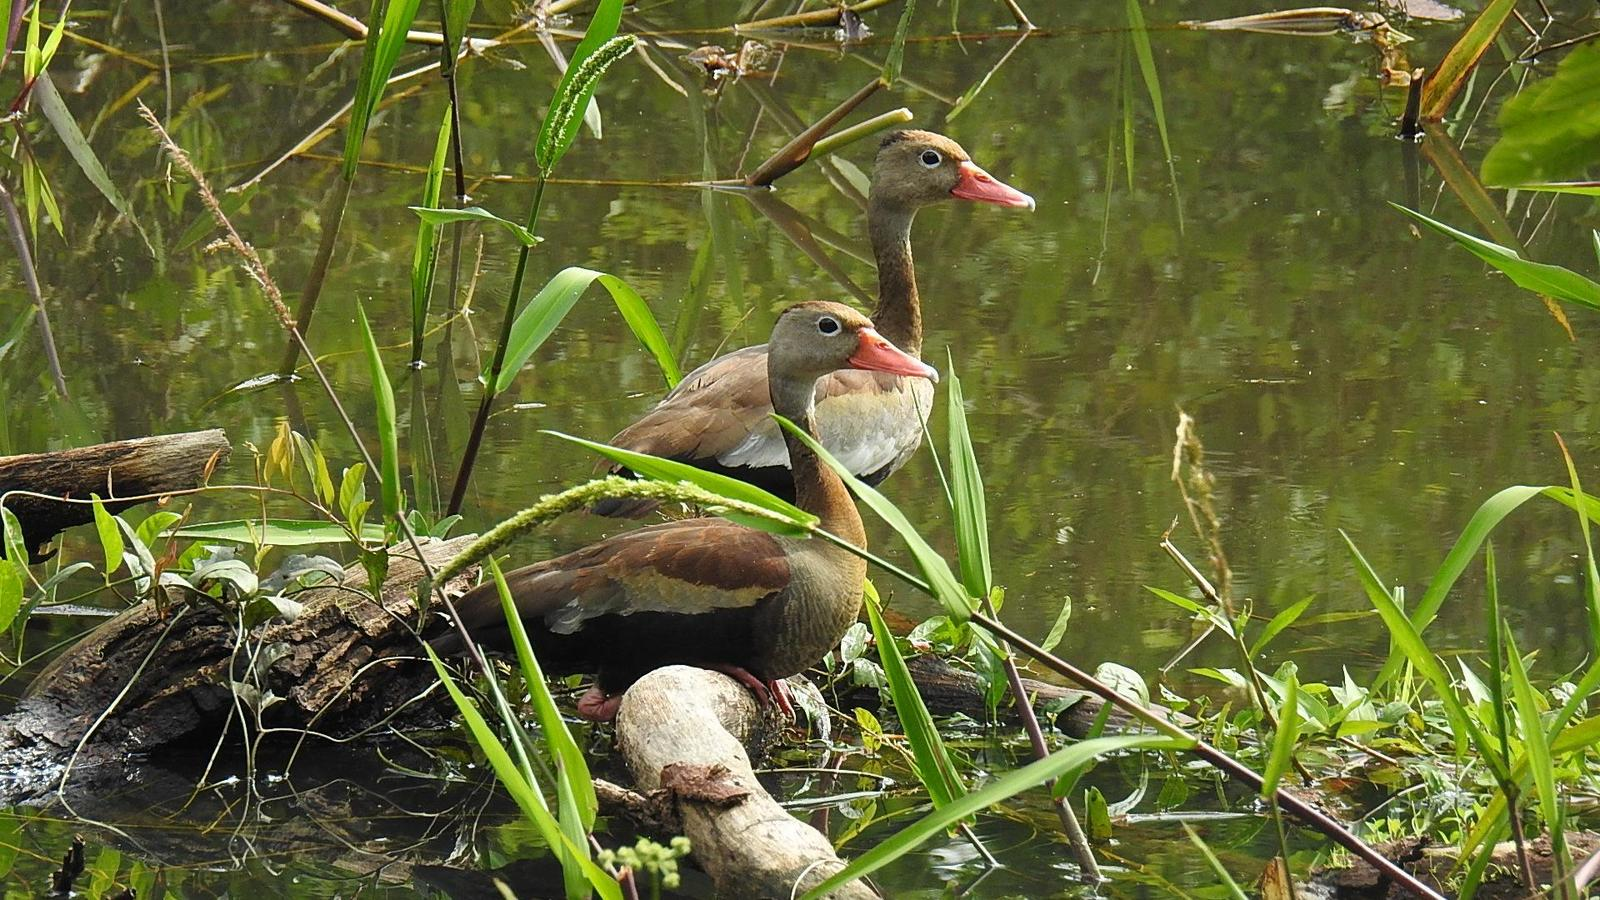 Black-bellied Whistling-Duck Photo by Julio Delgado